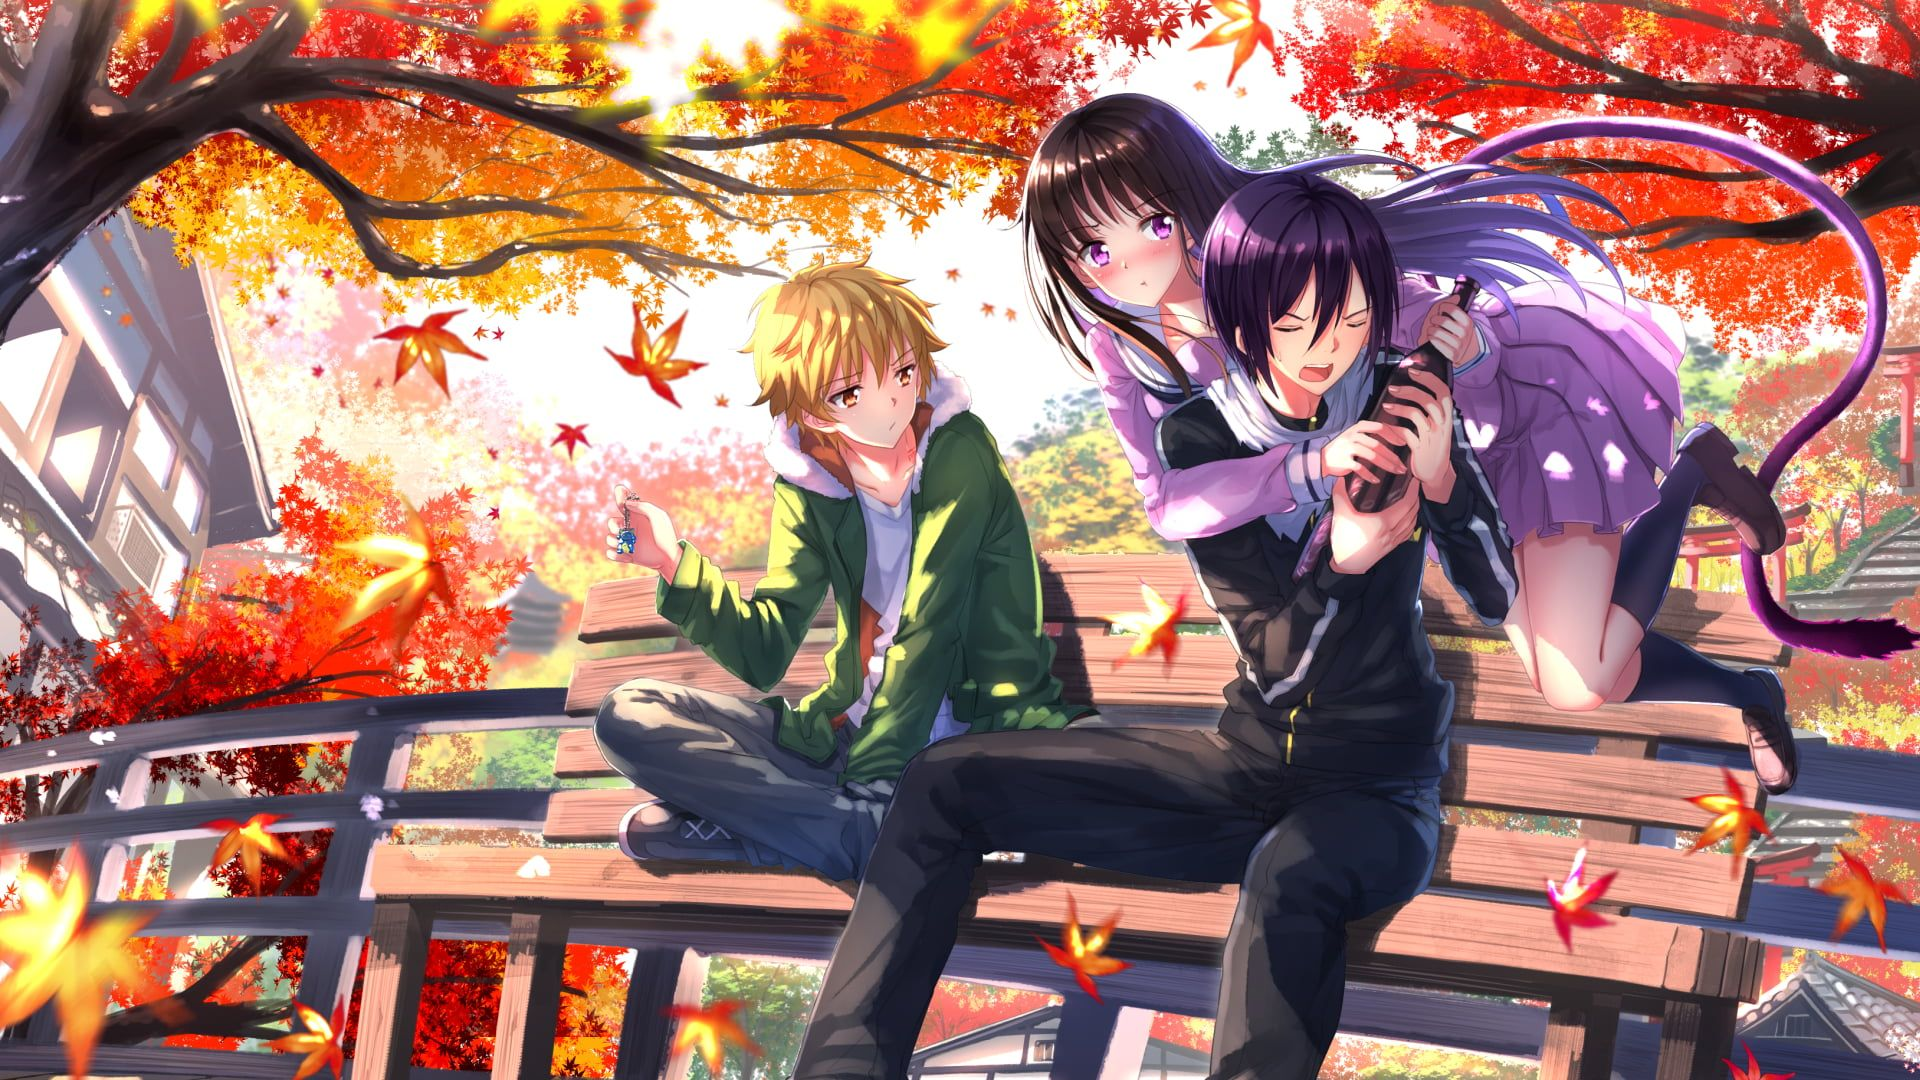 Two Men And Woman Anime Characters Wallpaper Two Men Sitting On Bench And Girl With Purple Dress Anime Characters Anime In 2020 Noragami Anime Yato Noragami Noragami